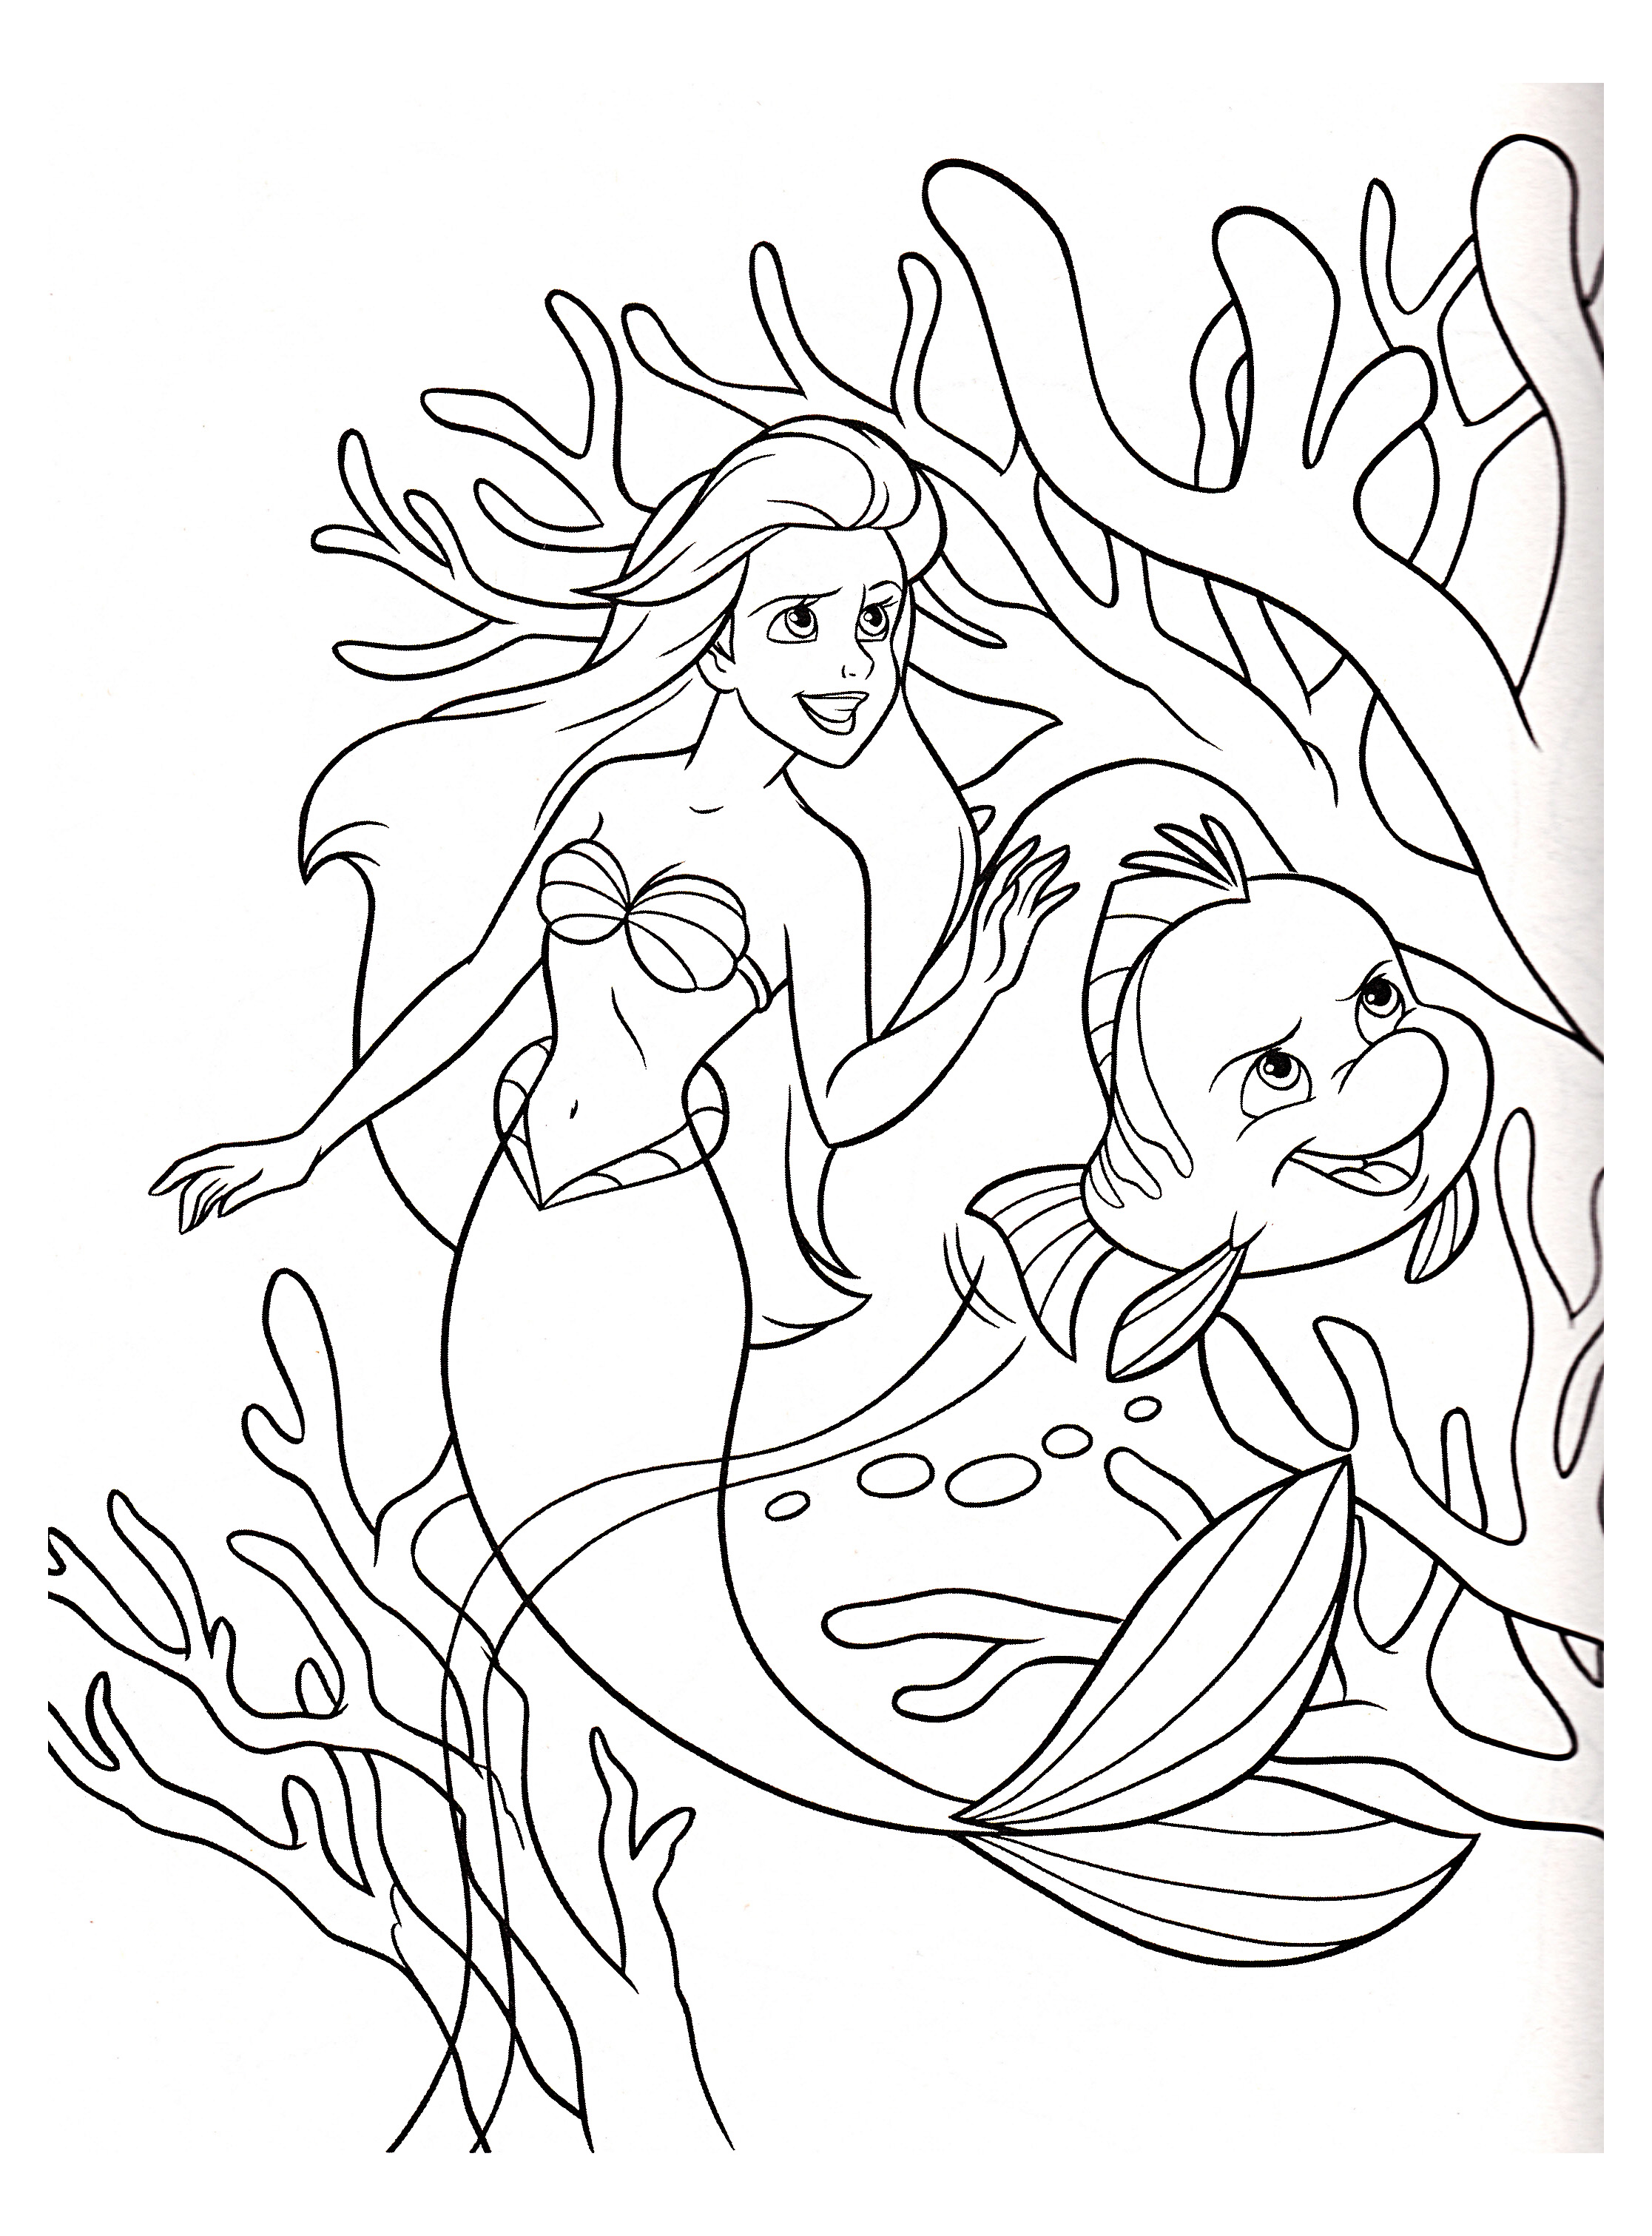 The little mermaid to color for children - The Little Mermaid Kids ...